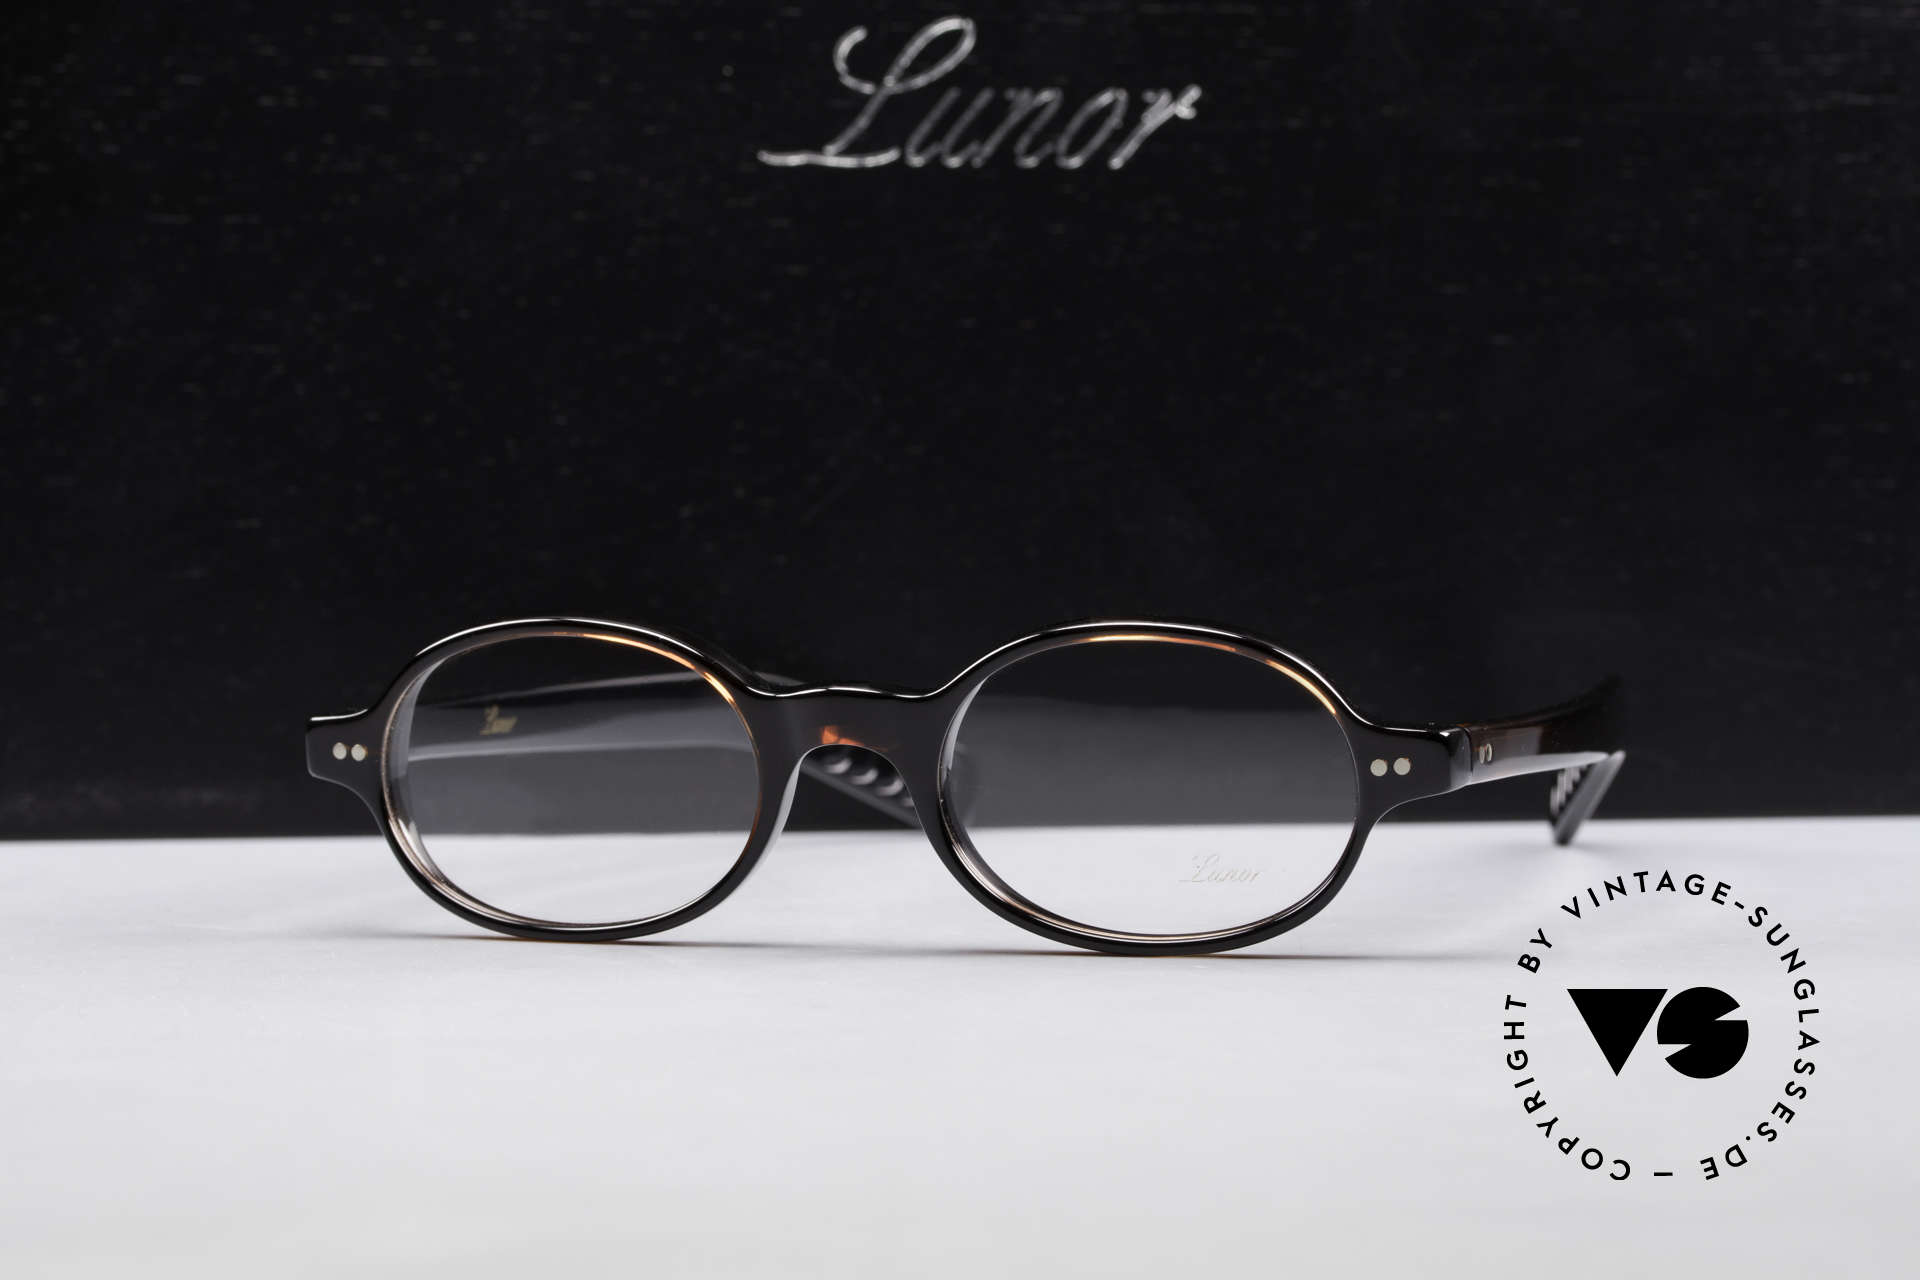 Lunor A57 Oval Lunor Acetate Glasses, Size: medium, Made for Men and Women